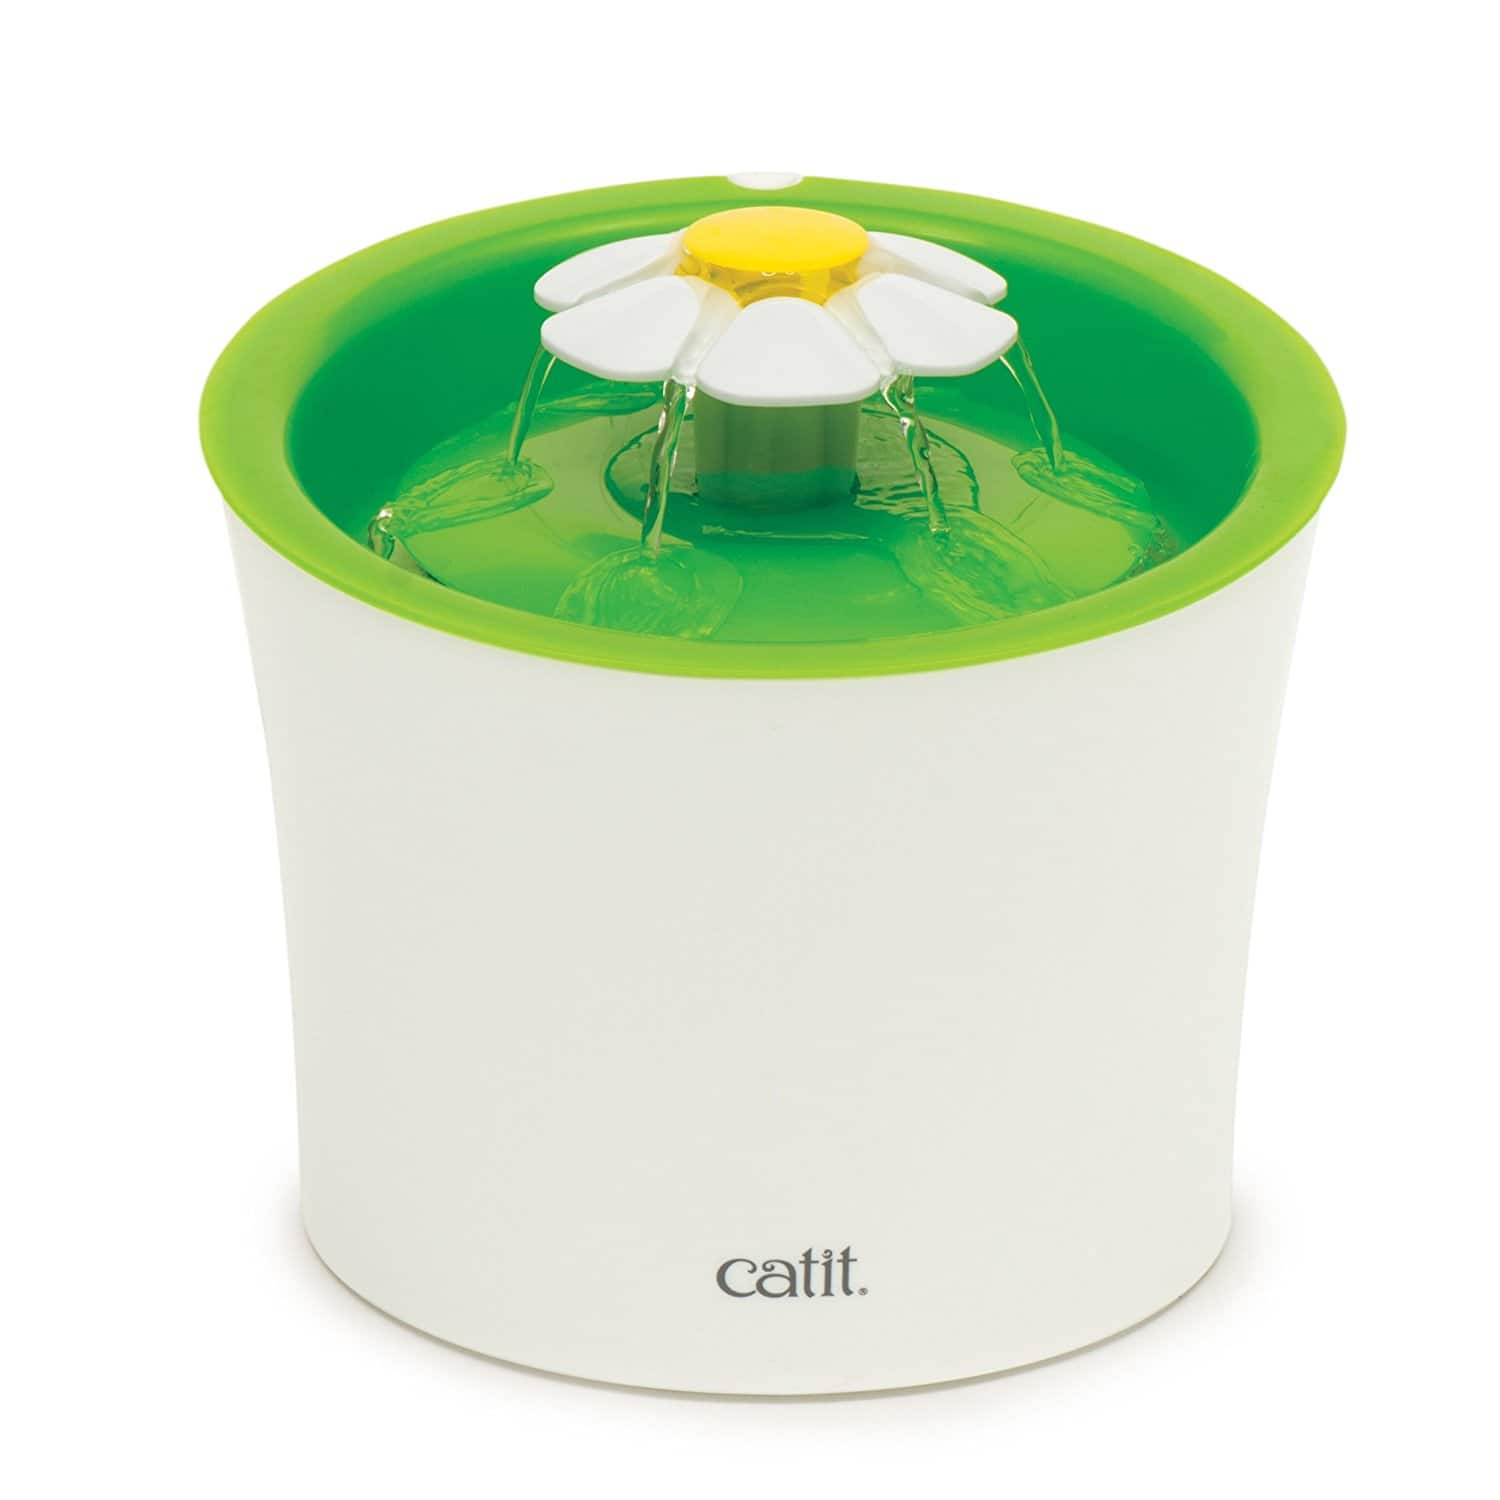 Catit Flower Fountain - $20.99 @ Amazon (free S&H over 25)